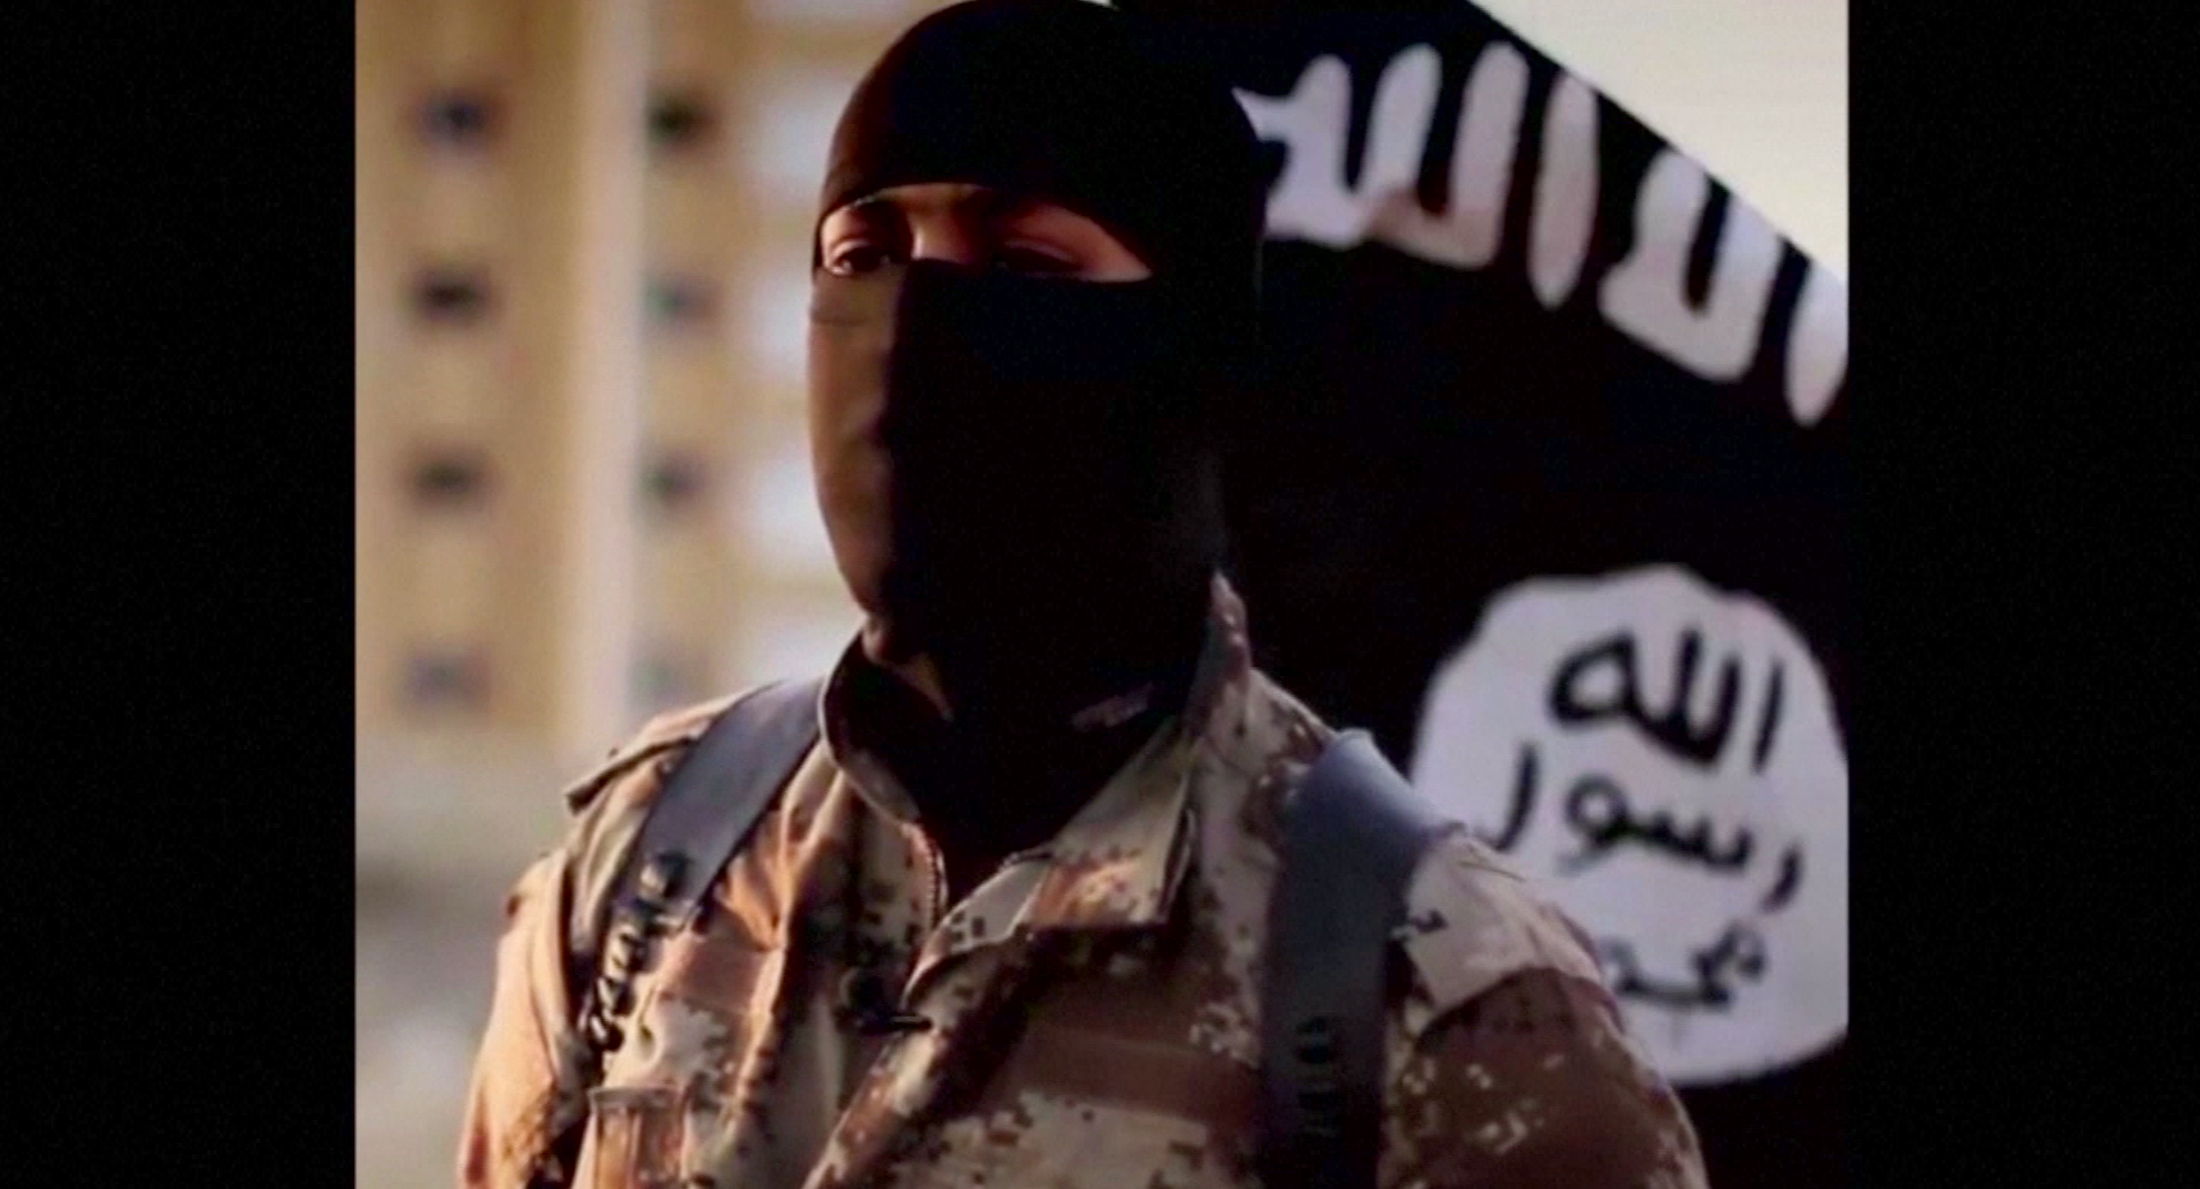 A masked man speaking in what is believed to be a North American accent is pictured in a video that ISIS militants released in September 2014.